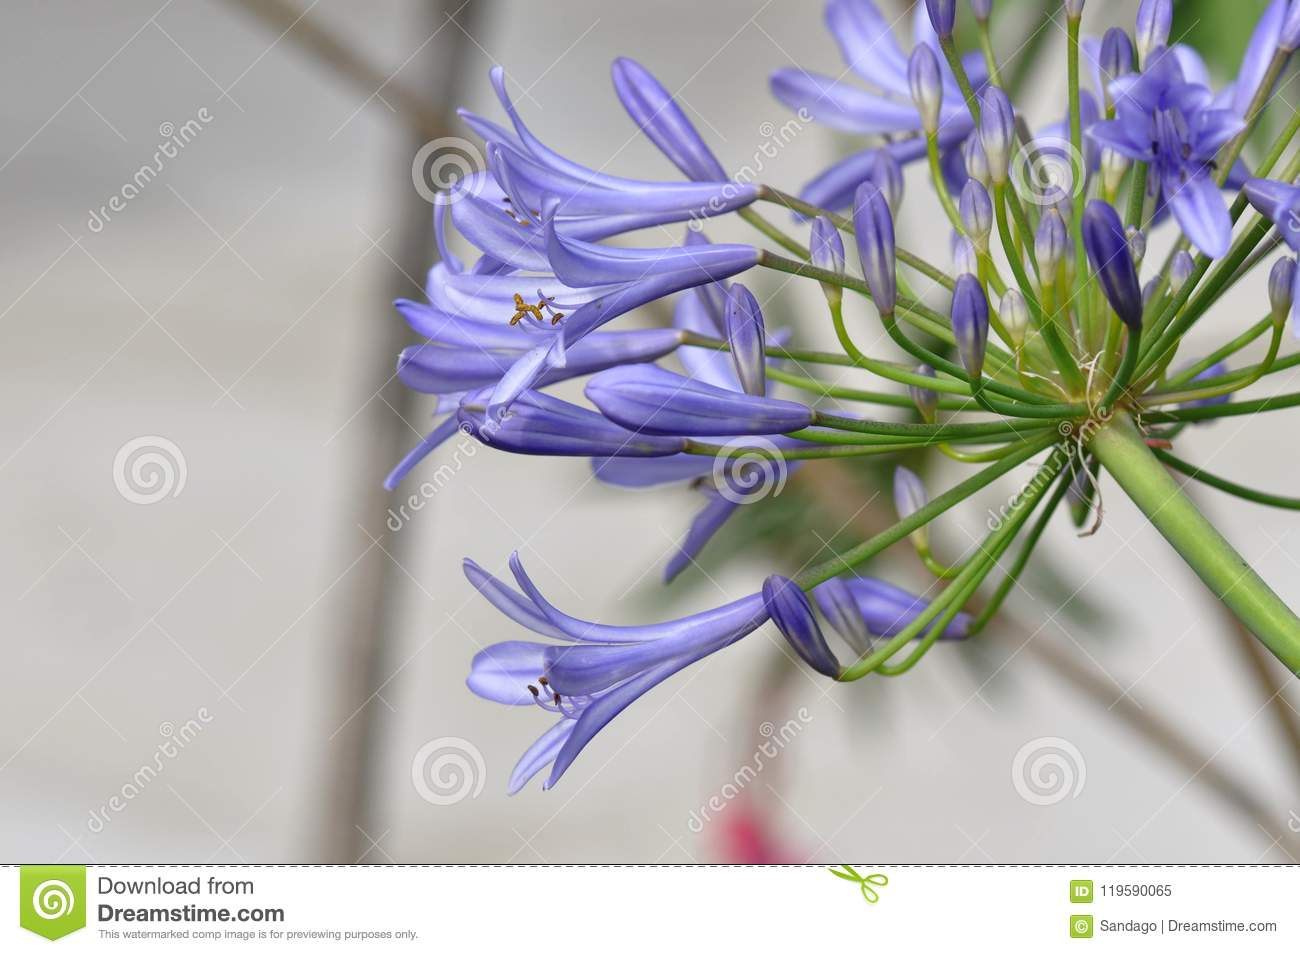 Lily of the nile flower stock image image of floral 119590065 lily of the nile flower izmirmasajfo